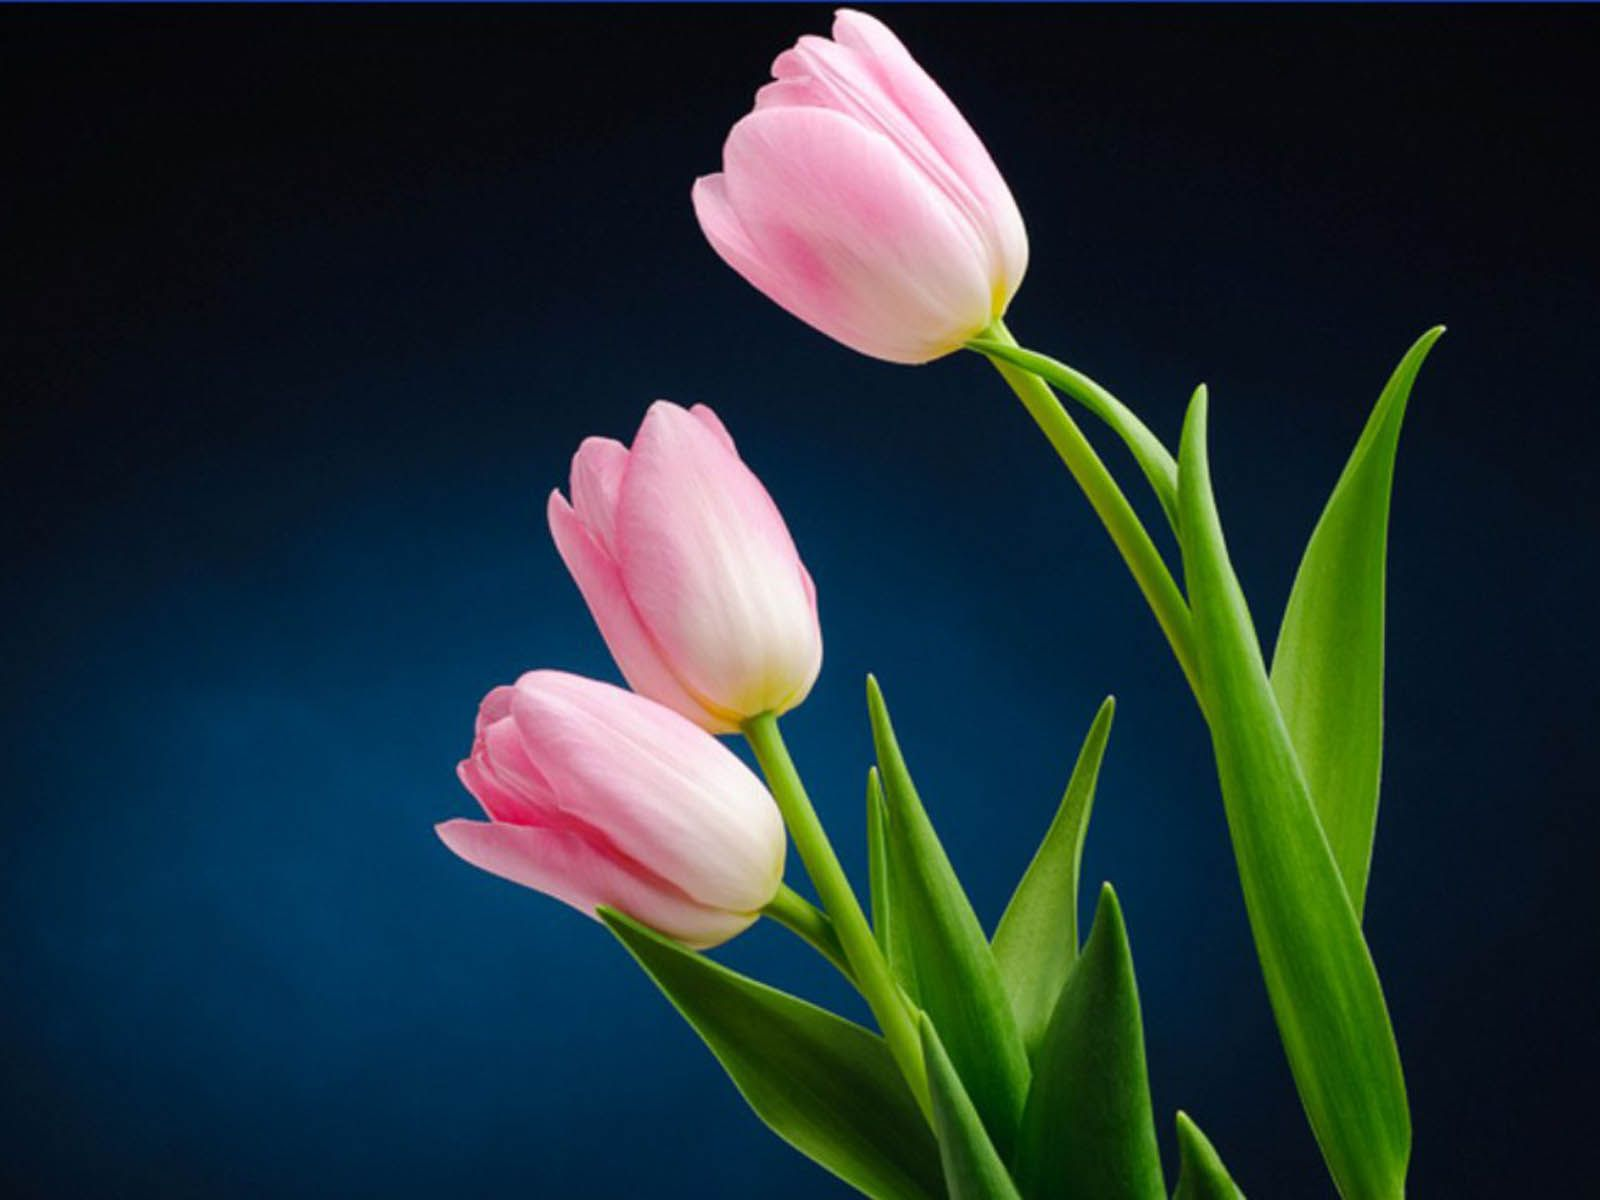 pictures of tulips flowers   Pink Tulip Flower Pictures   Art     pictures of tulips flowers   Pink Tulip Flower Pictures